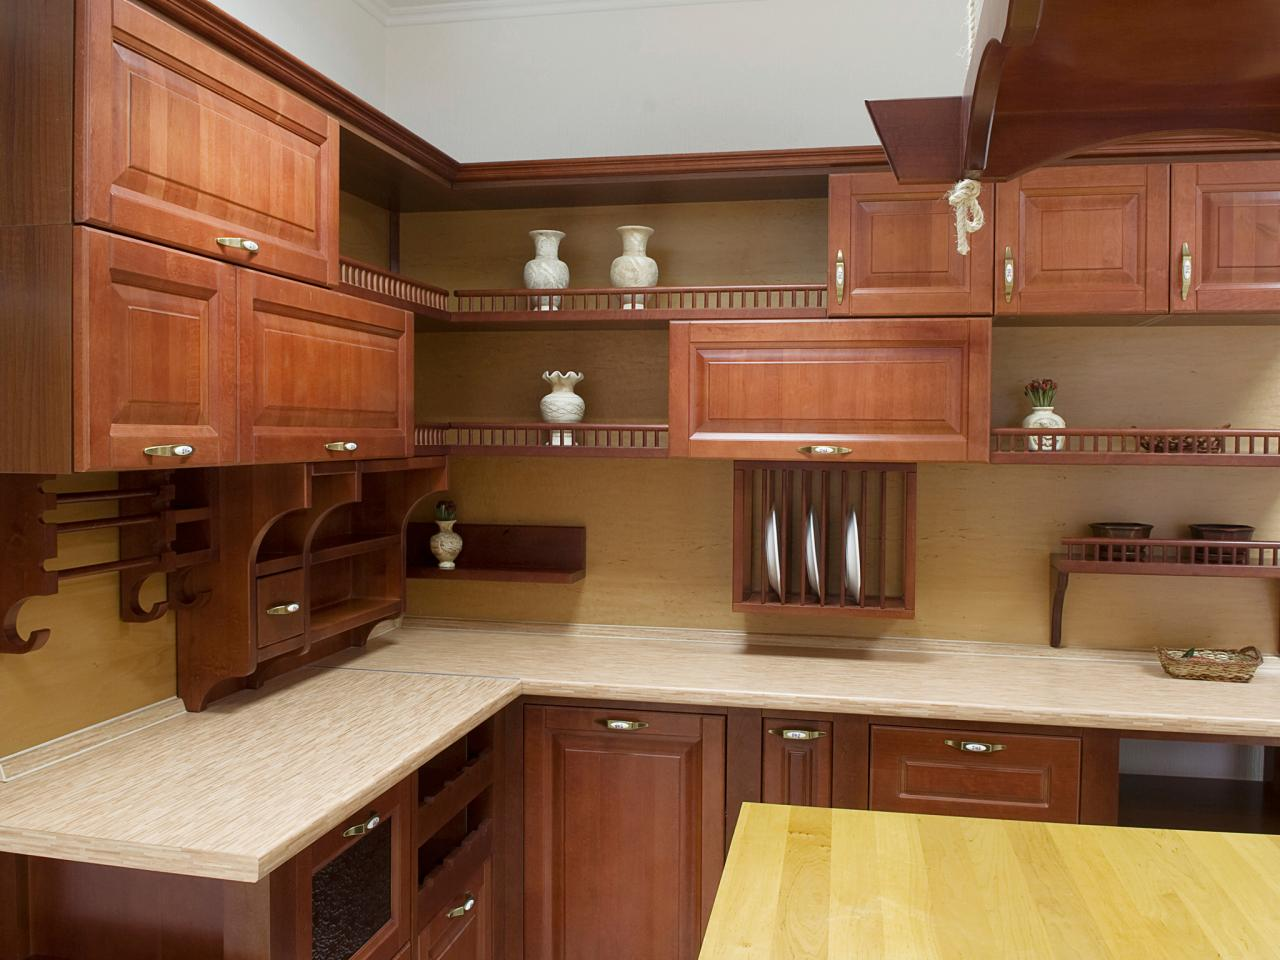 kitchen cabinets design and ideas photo - 6